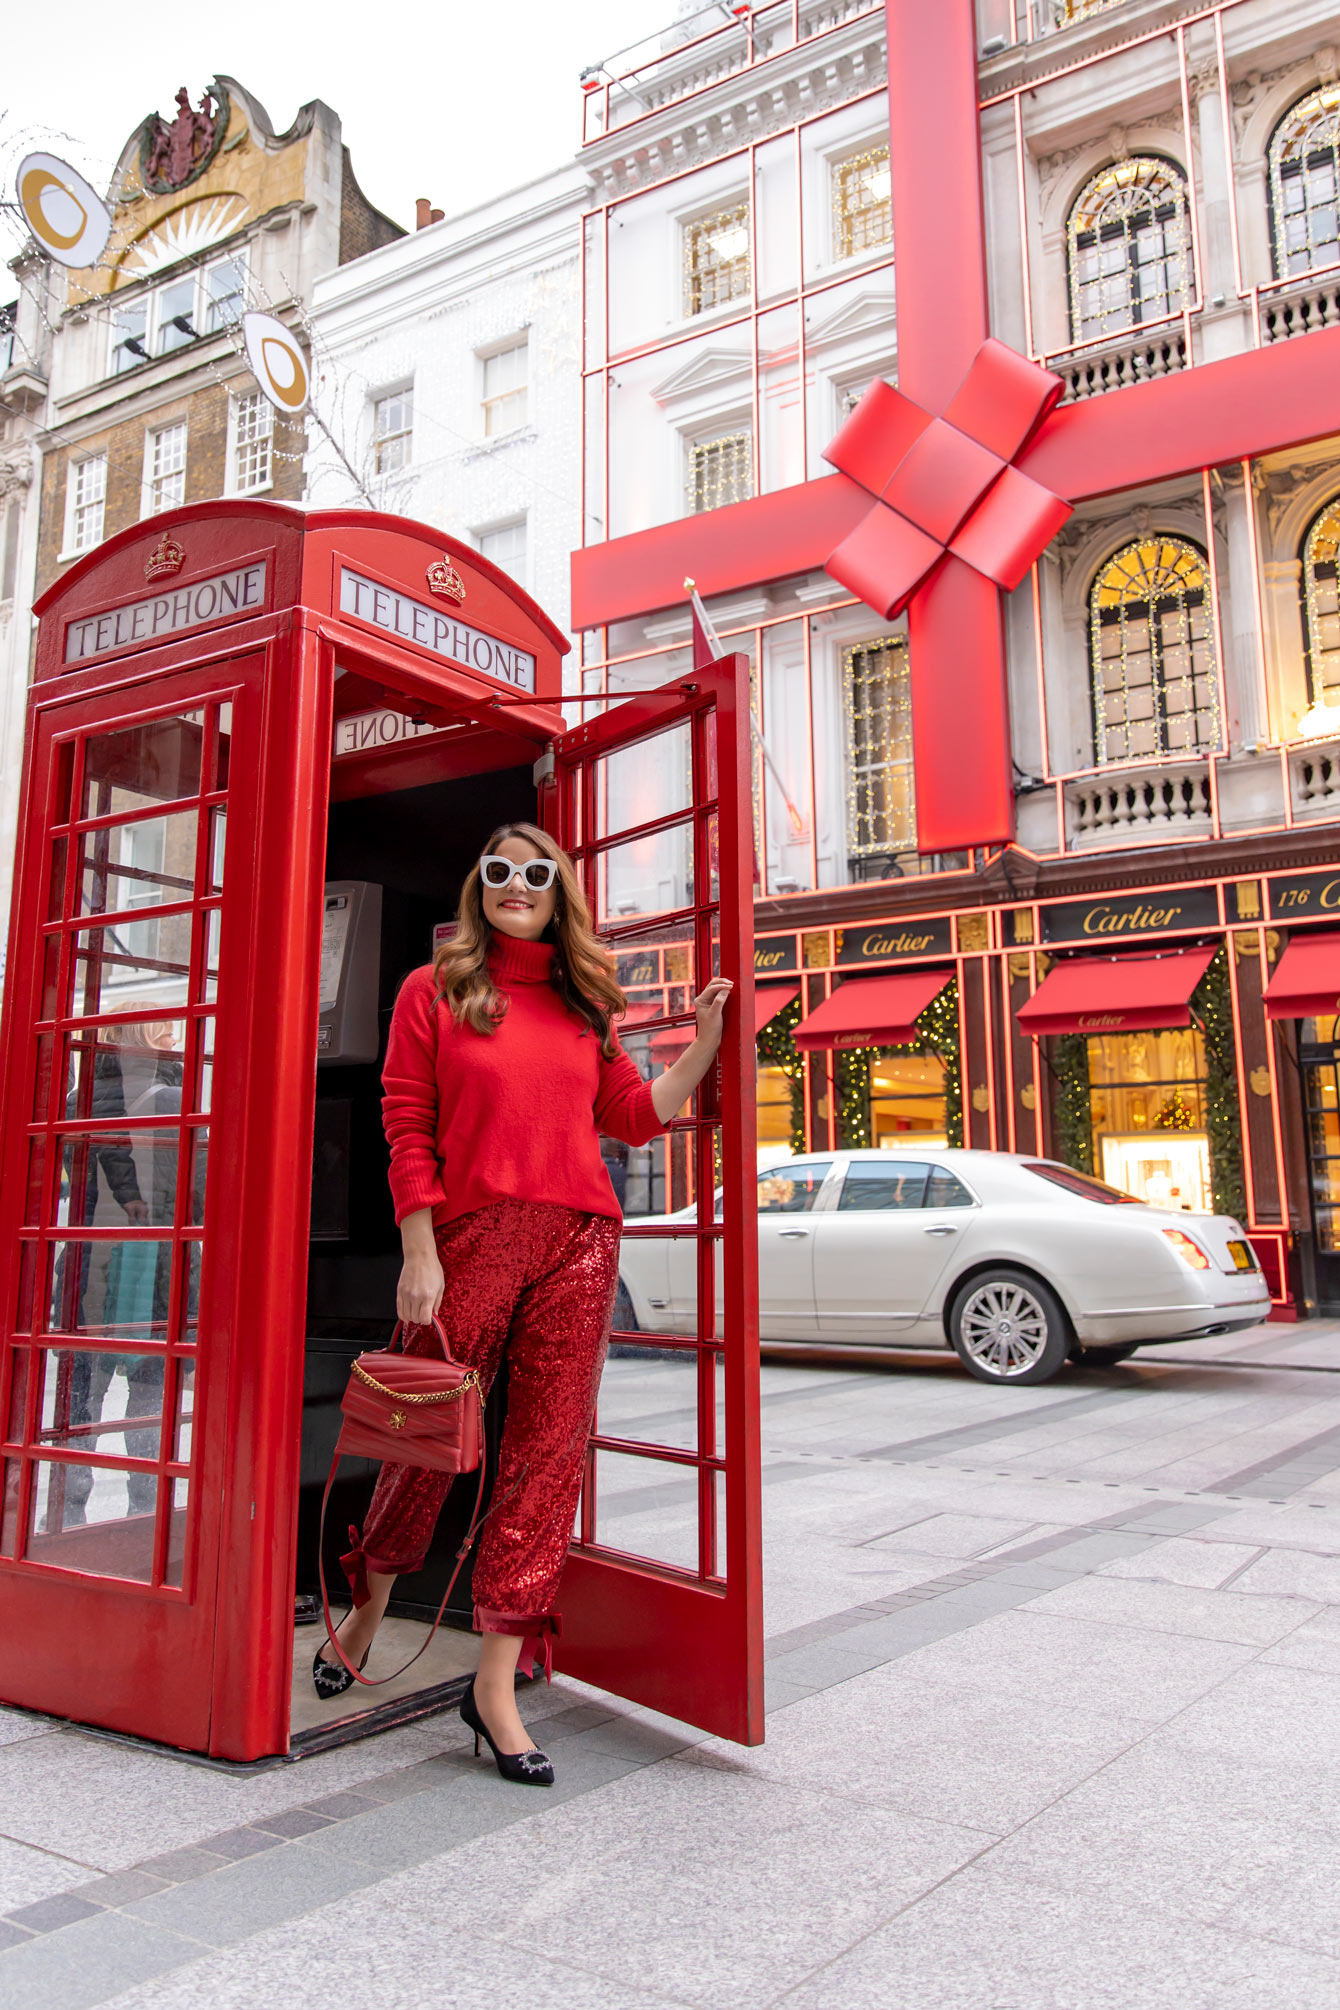 Cartier London Telephone Booth